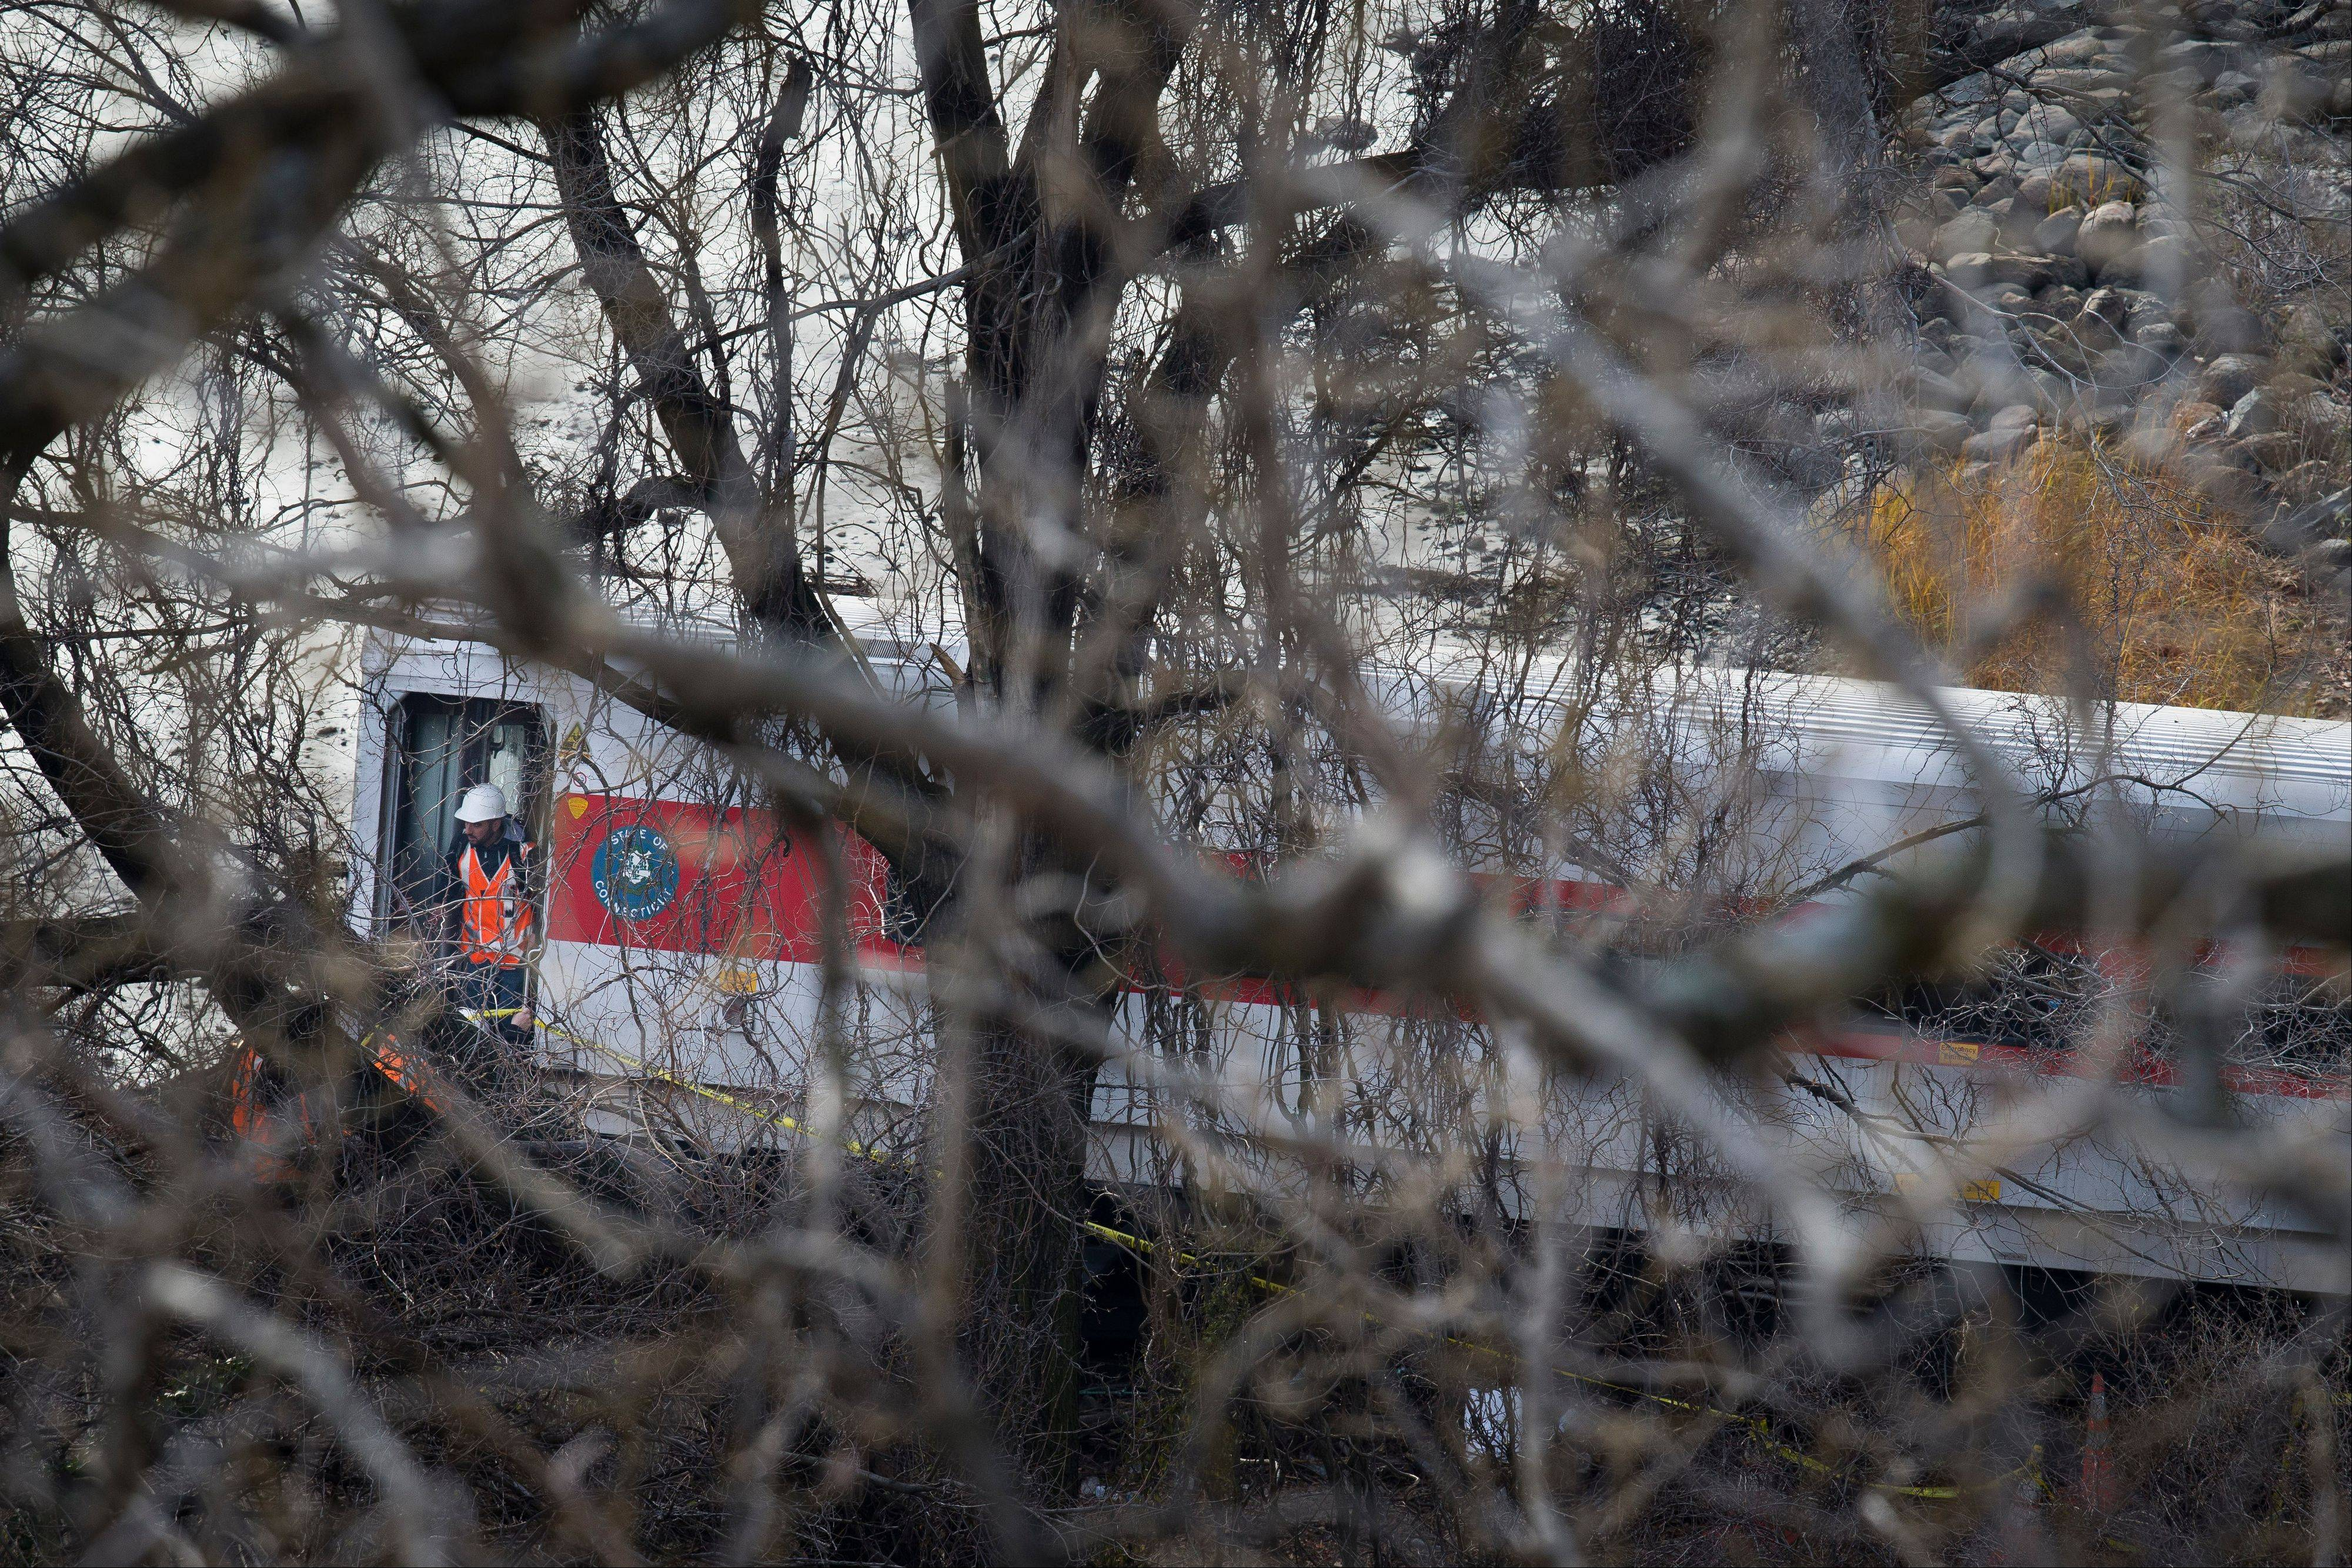 An emergency worker exits a derailed Metro-North passenger train a few feet from water in the Bronx borough of New York, Sunday.